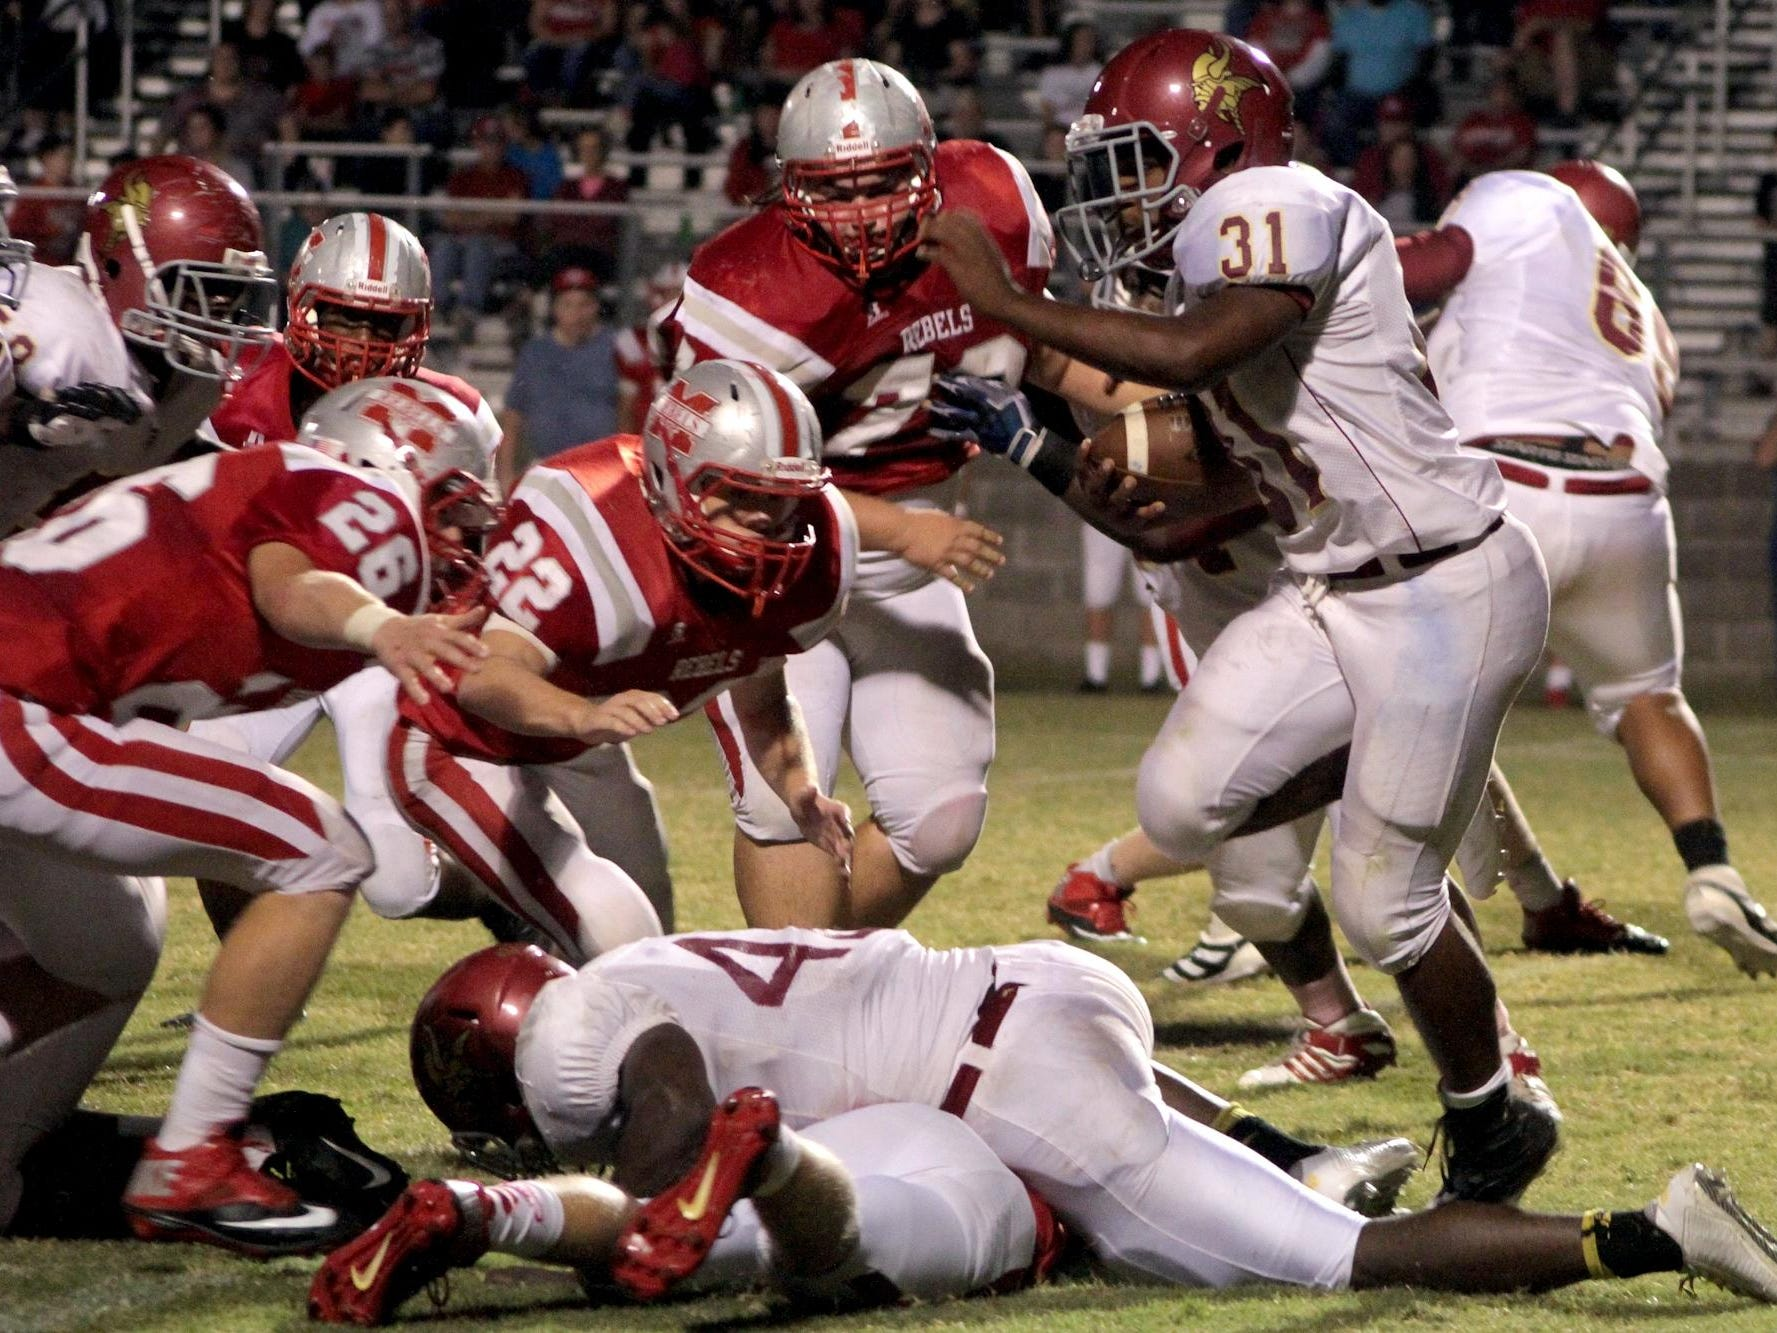 Humboldt's Jaylon Stewart (31) attempts to break tackles while rushing the ball against McKenzie last season.